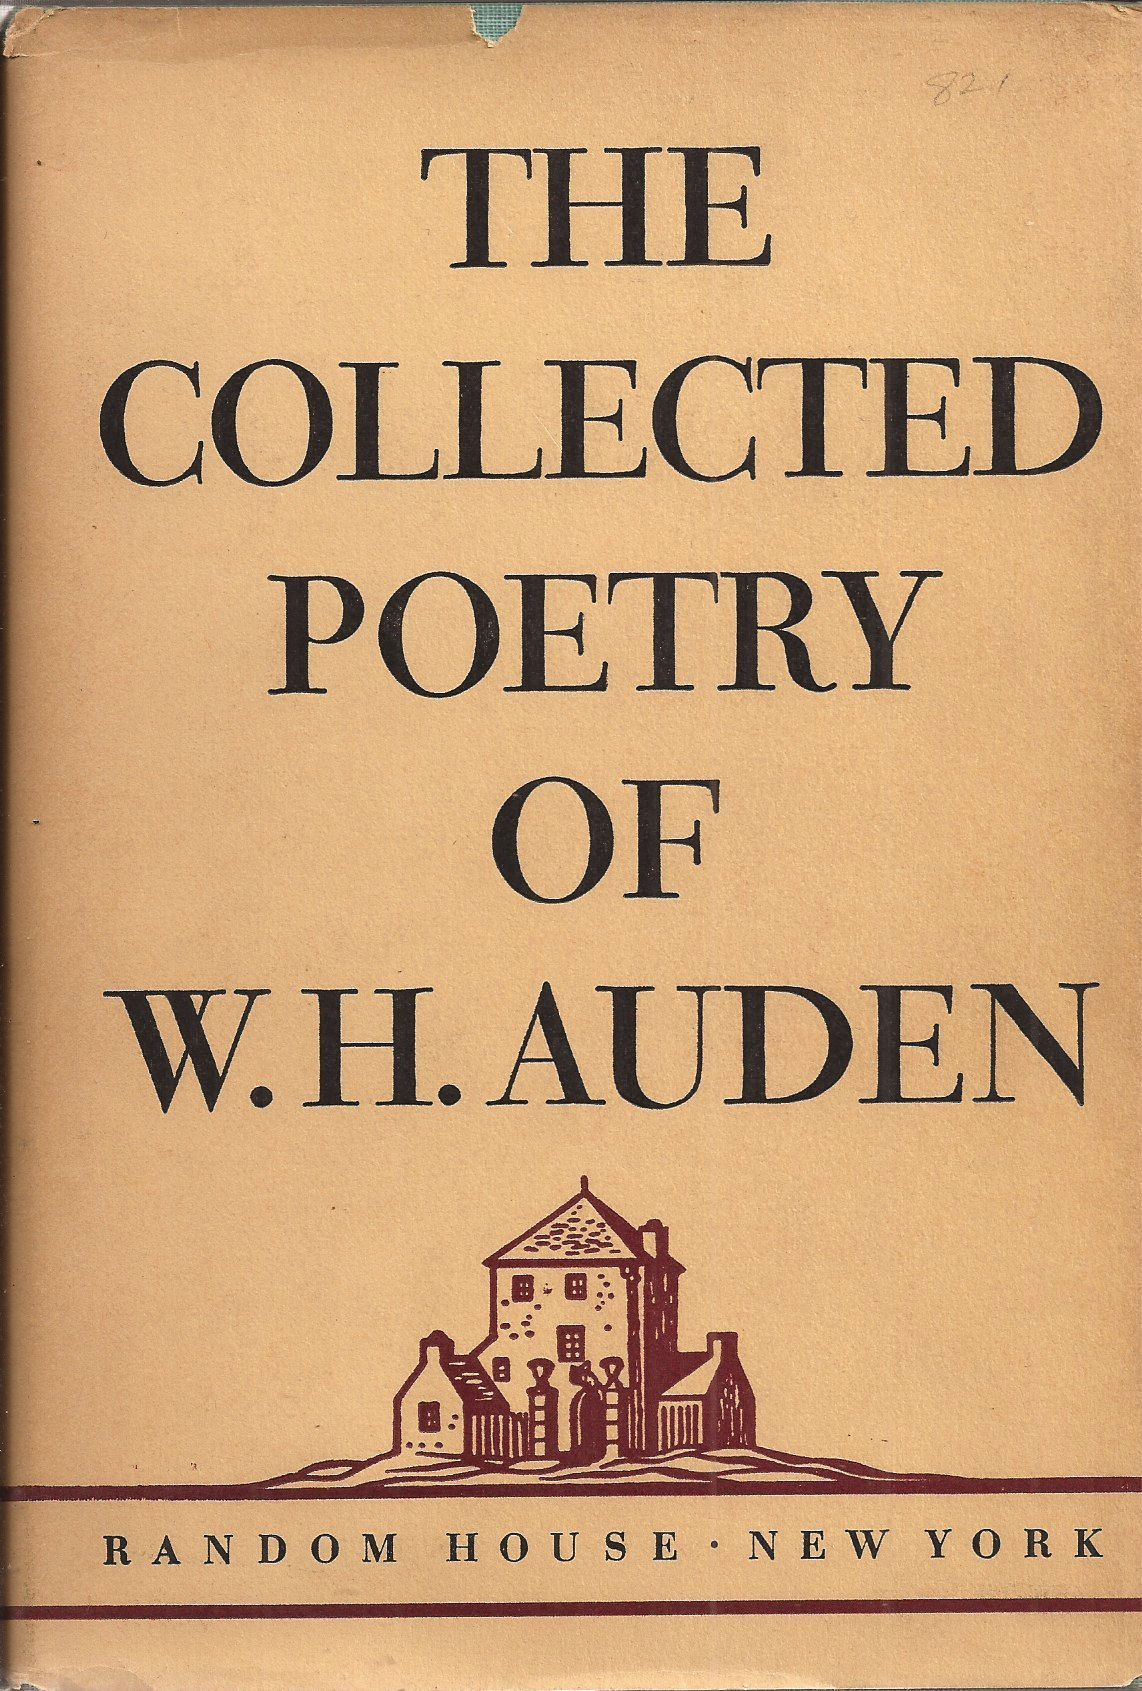 poetry and w h auden In an atlantic magazine article, author caleb crain touts the virtues of memorizing poetry, and for him in particular the mid-20th century british poet wh auden's in praise of limestone.